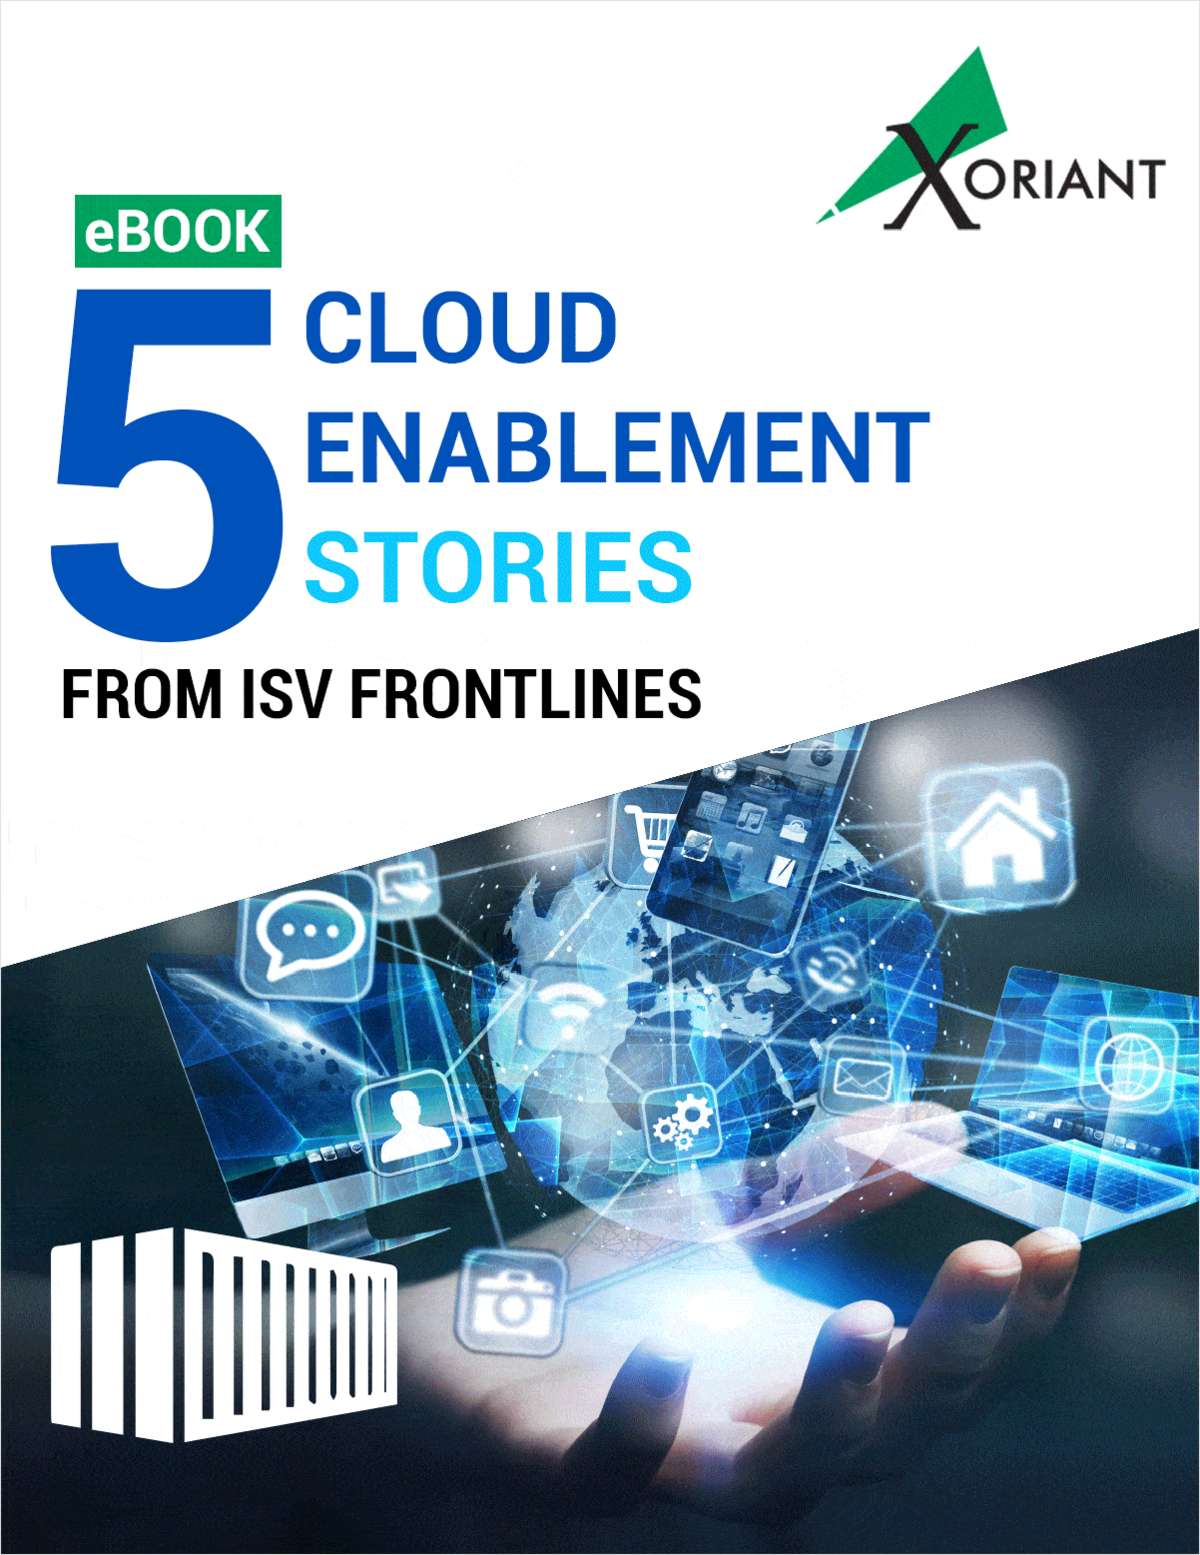 5 CLOUD ENABLEMENT STORIES FROM THE ISV FRONTLINES